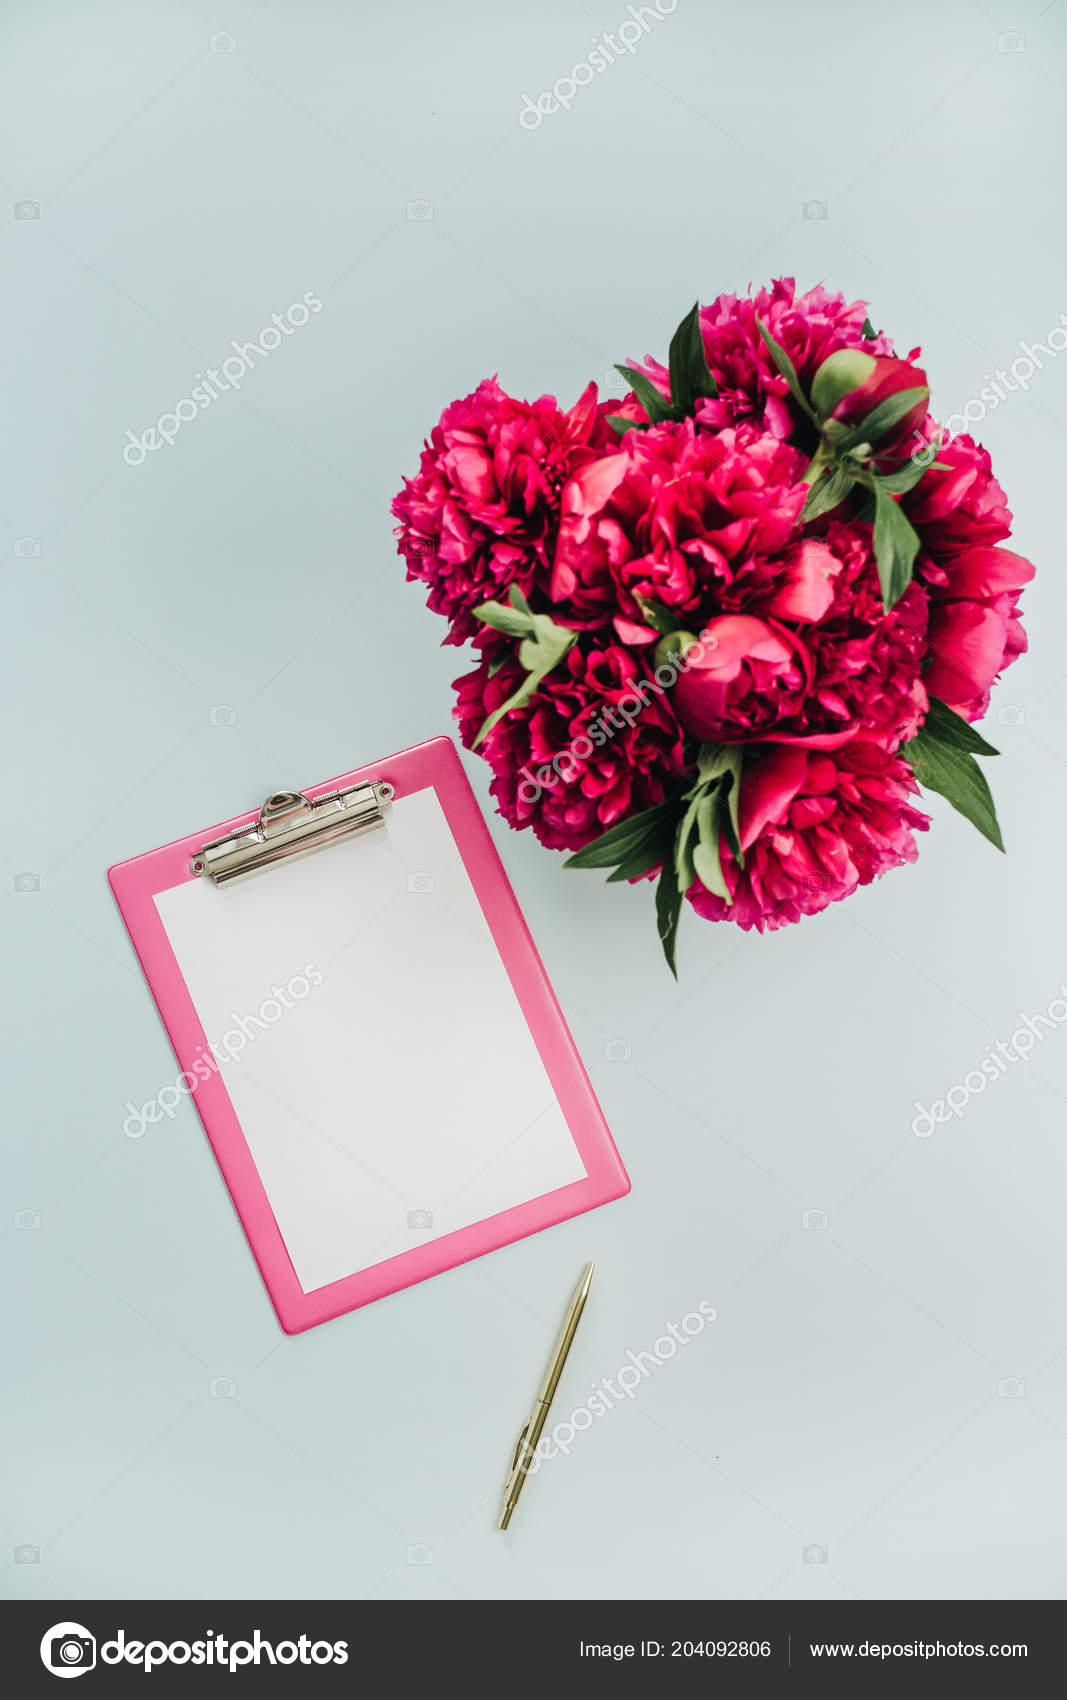 Minimalist Flat Lay Office Table Desk With Clipboard, Peony Flowers Bouquet  On Blue Background. Top View Work Concept Mock Up. U2014 Foto Von  Maximleshkovich